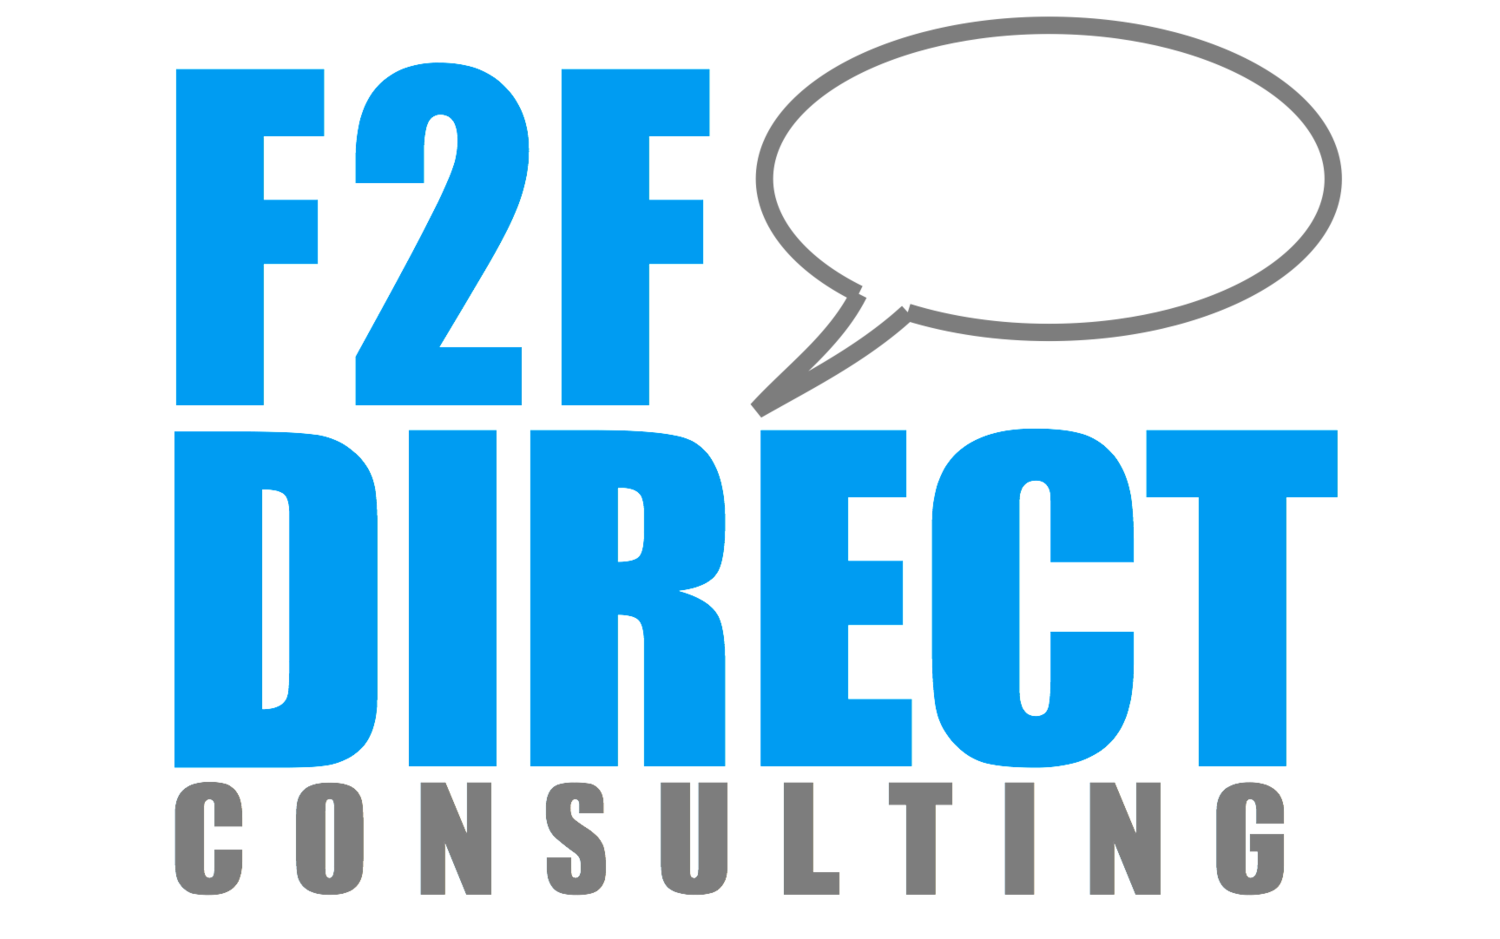 F2F Direct Consulting